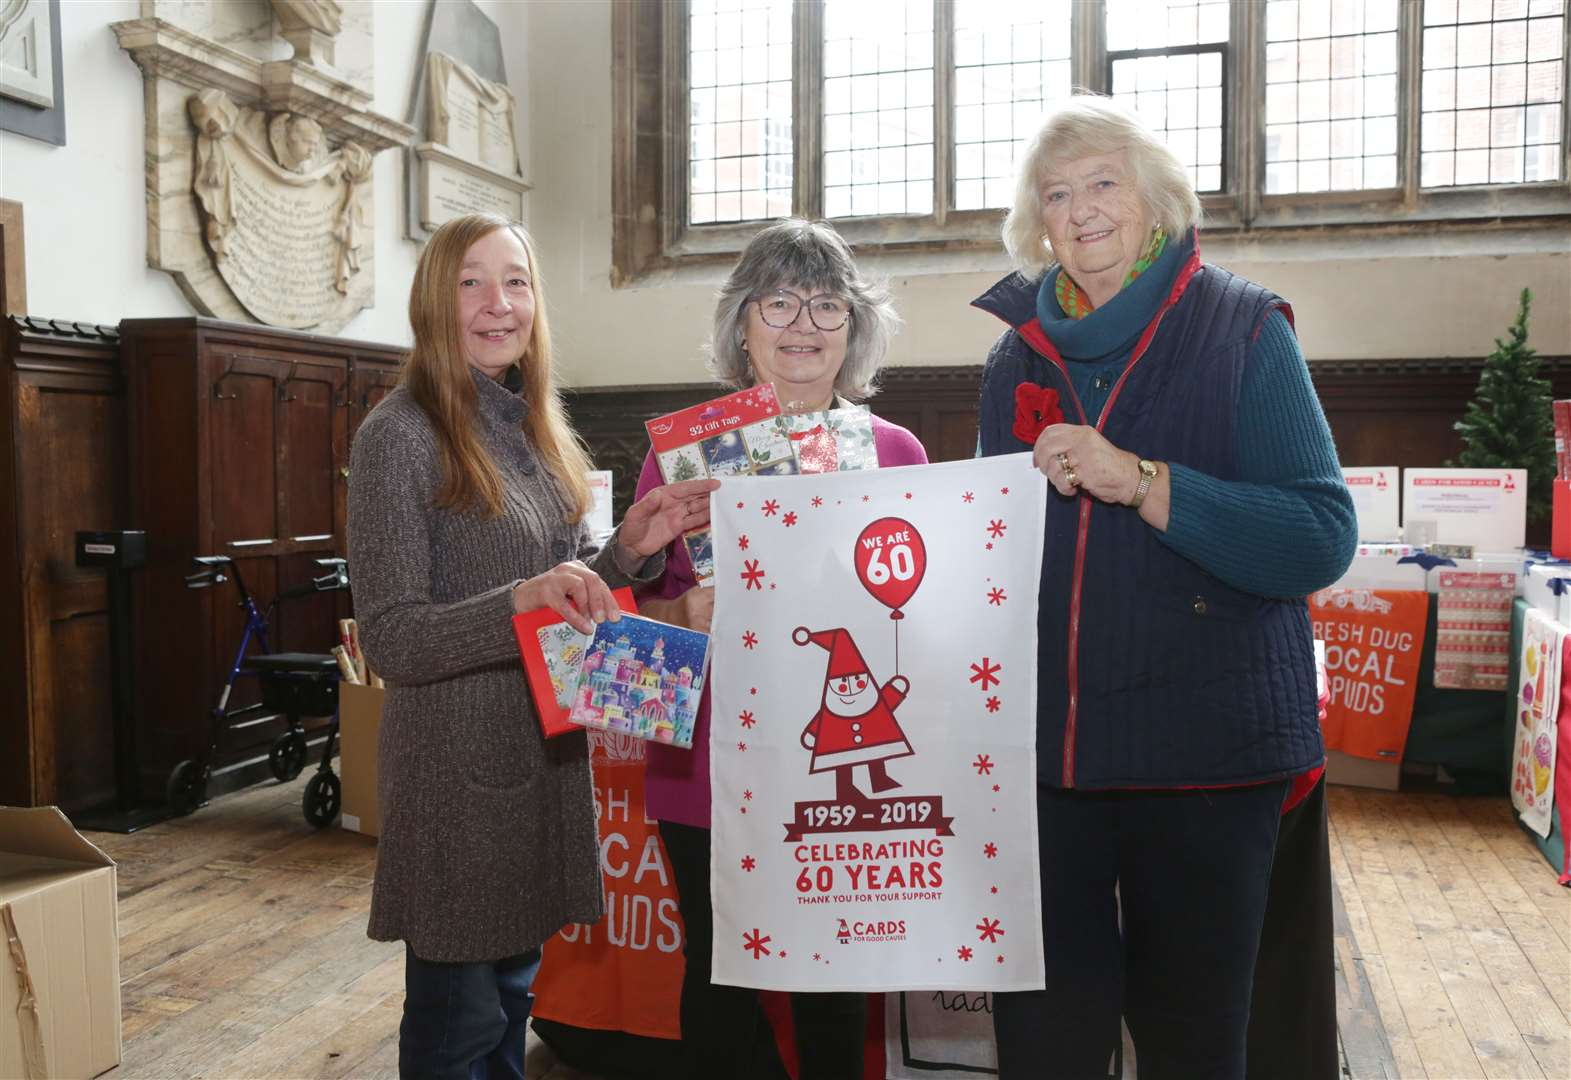 Christmas card pop-up shop opens in parish church